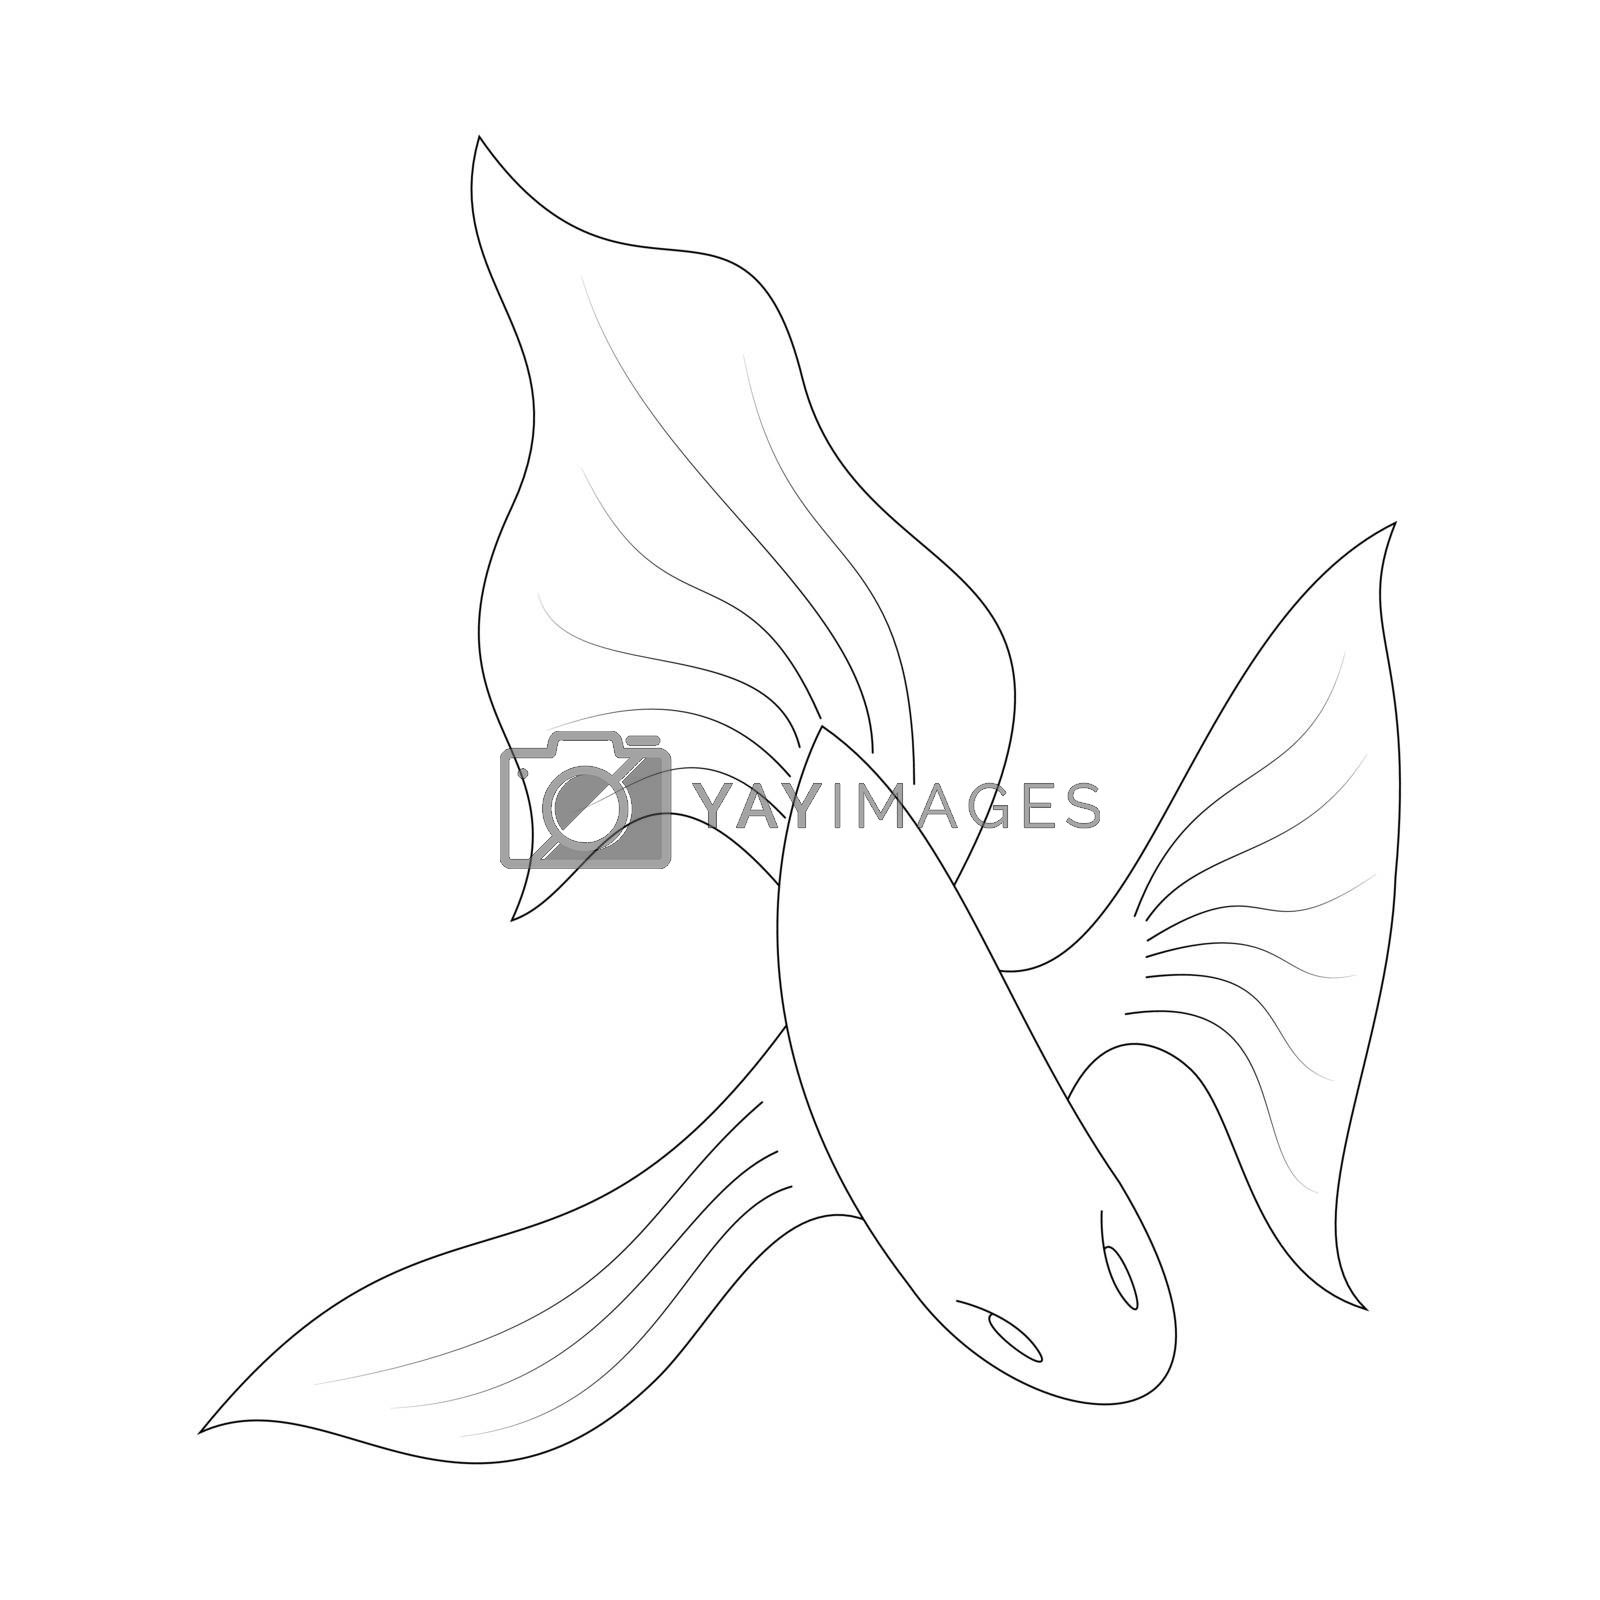 Cartoon goldfish outline. Vector illustration isolated on white background. Decoration for greeting cards, posters, flyers, prints for clothes.